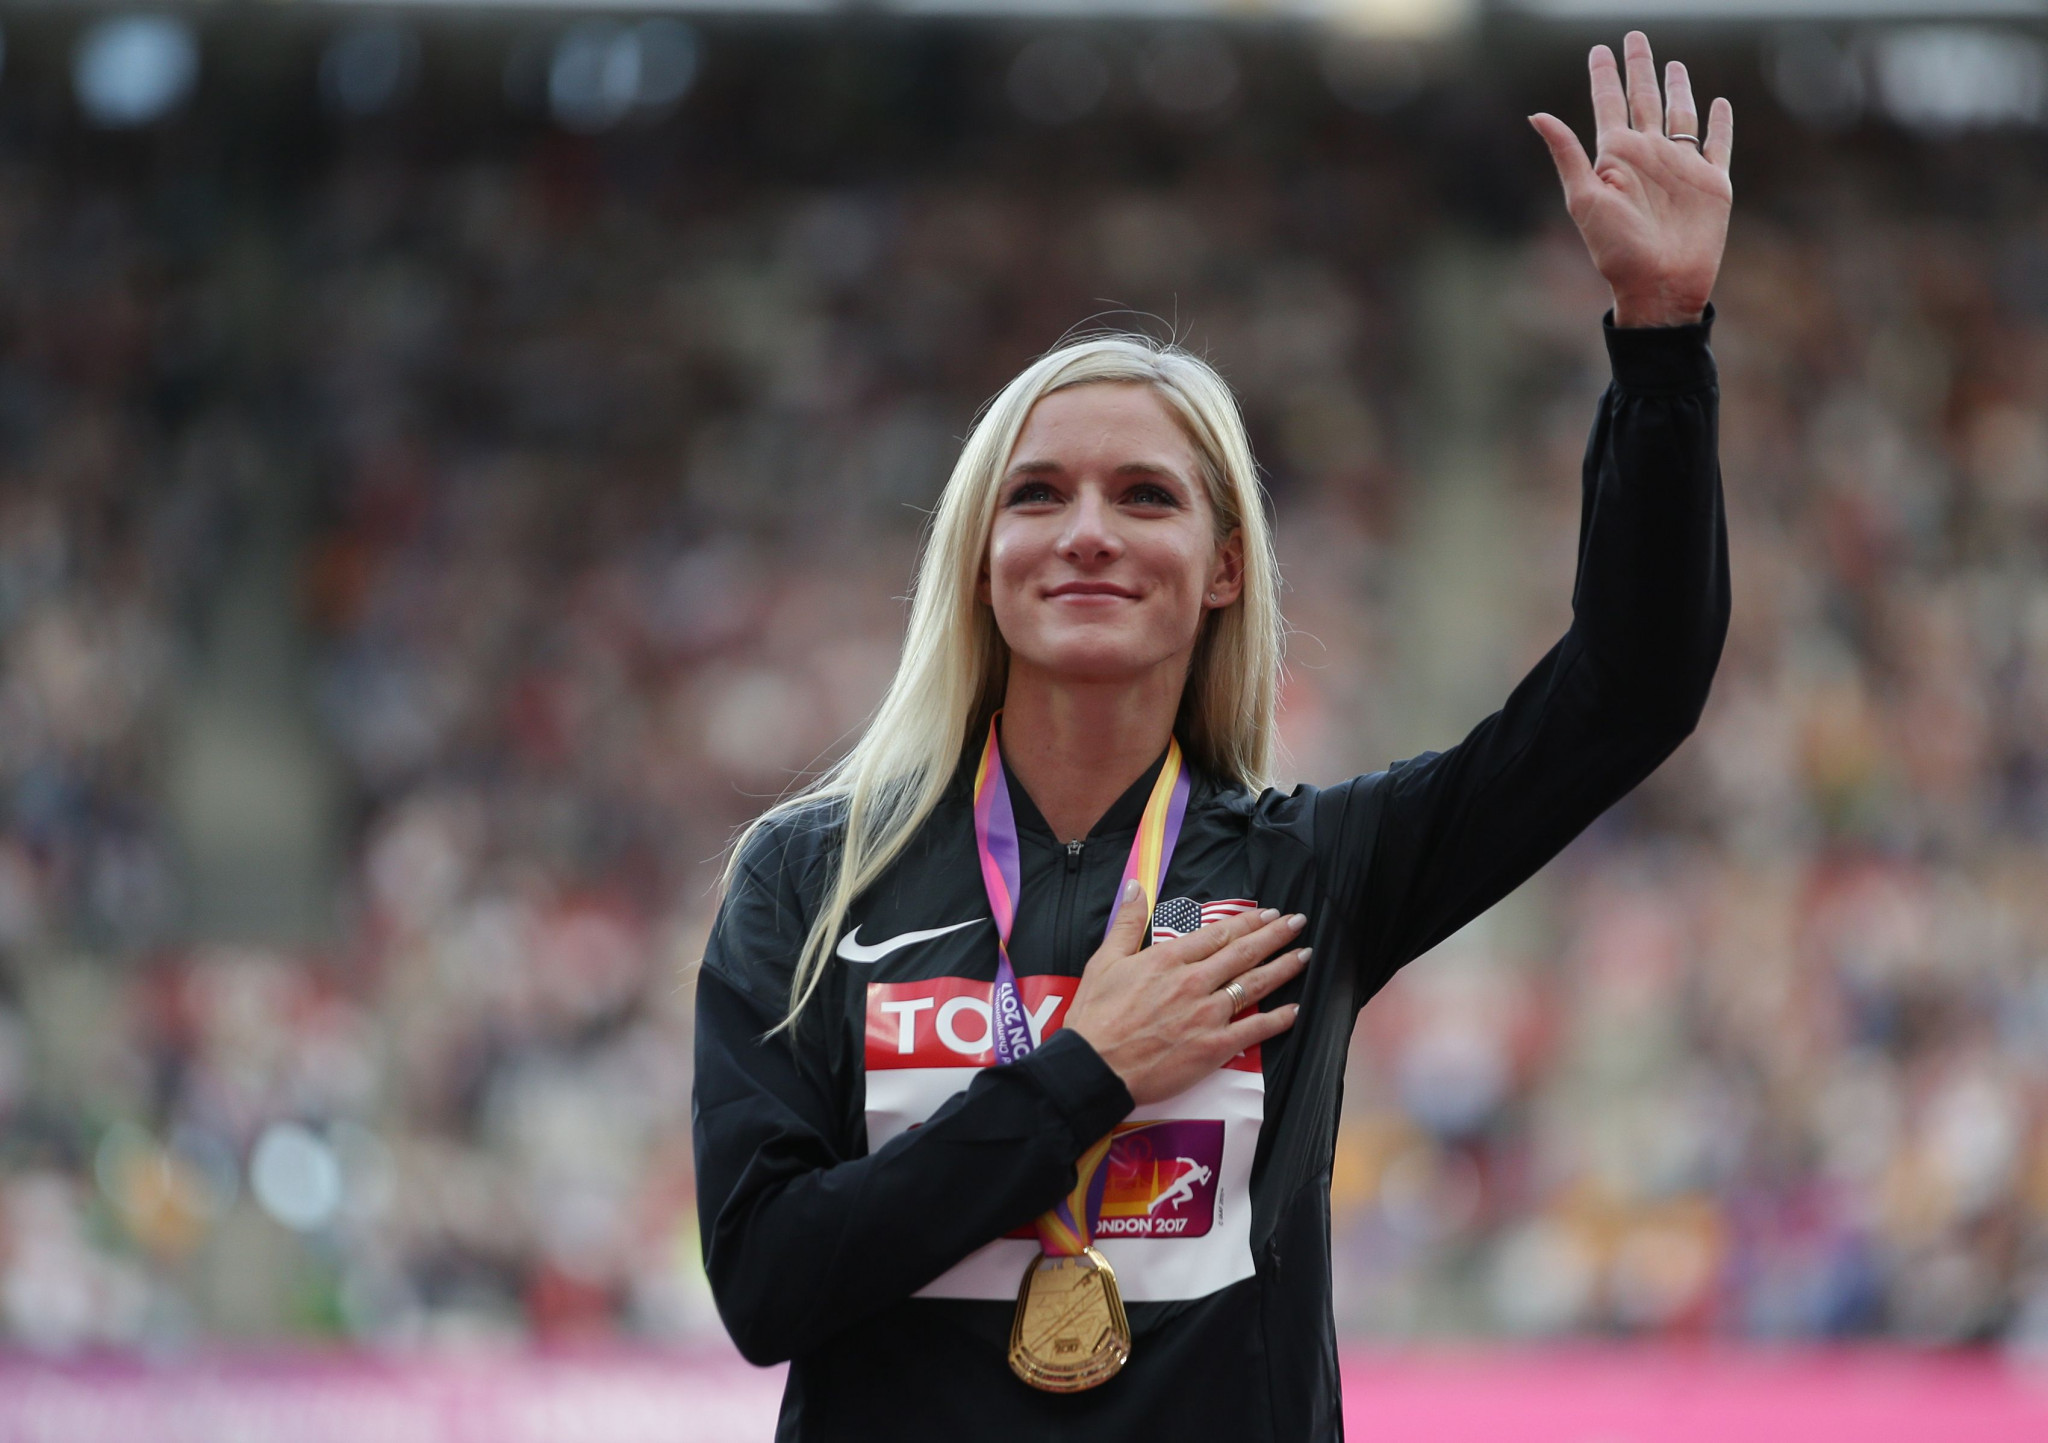 Steeplechase world champion becomes latest athlete to back Helleland for WADA Presidency as calls for significant reform